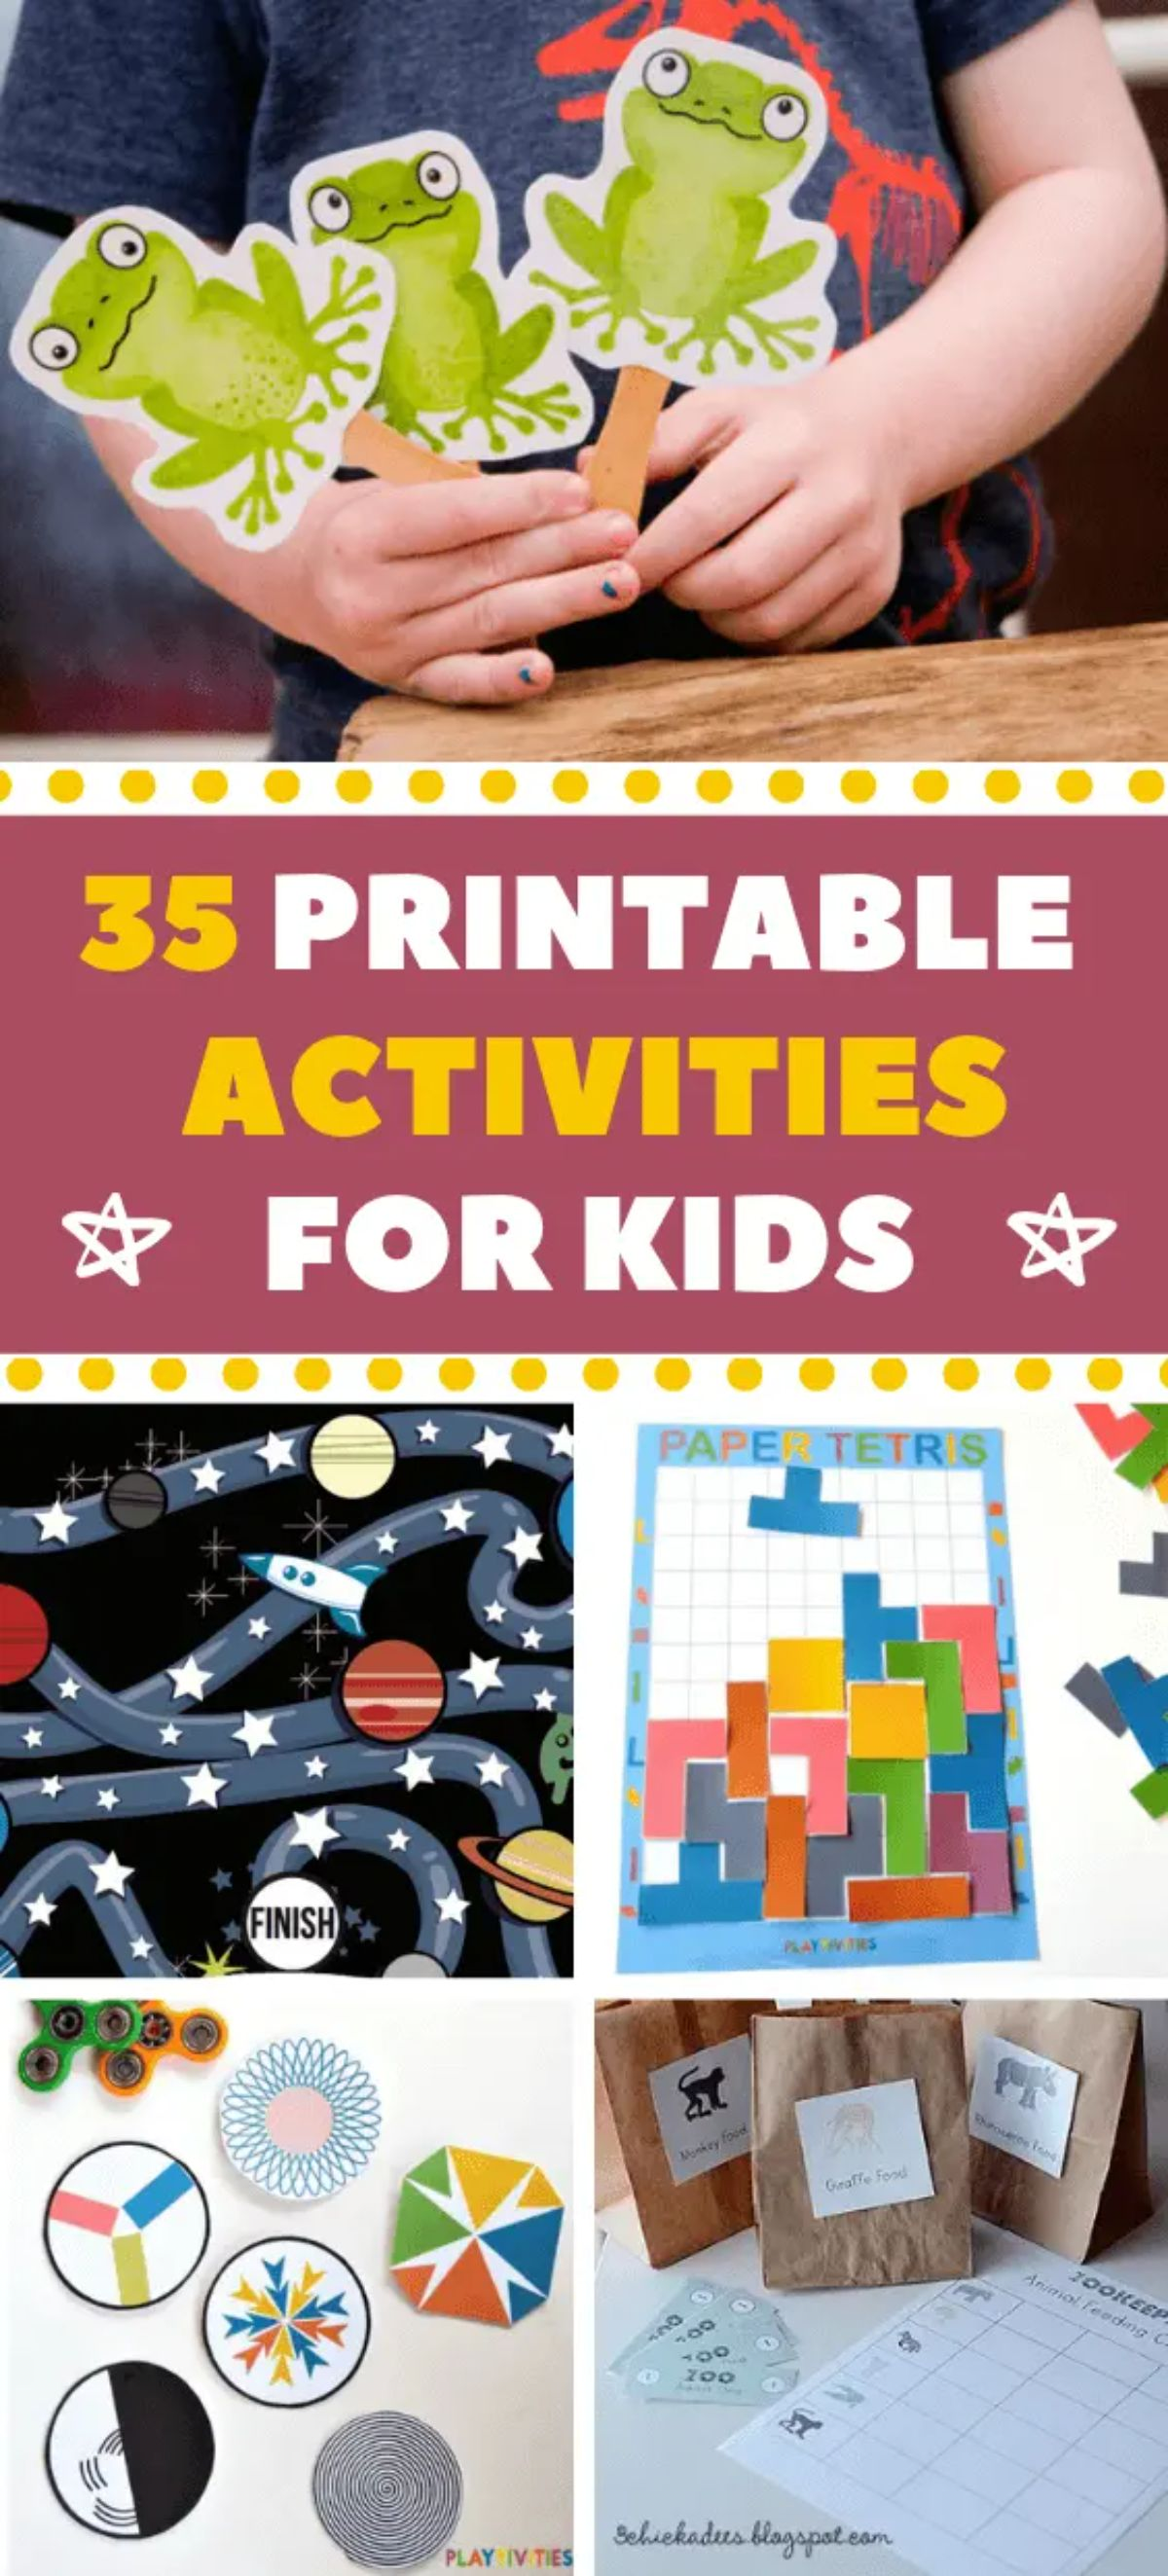 """""""35 printable activities for kids"""" with 5 images of printable games."""